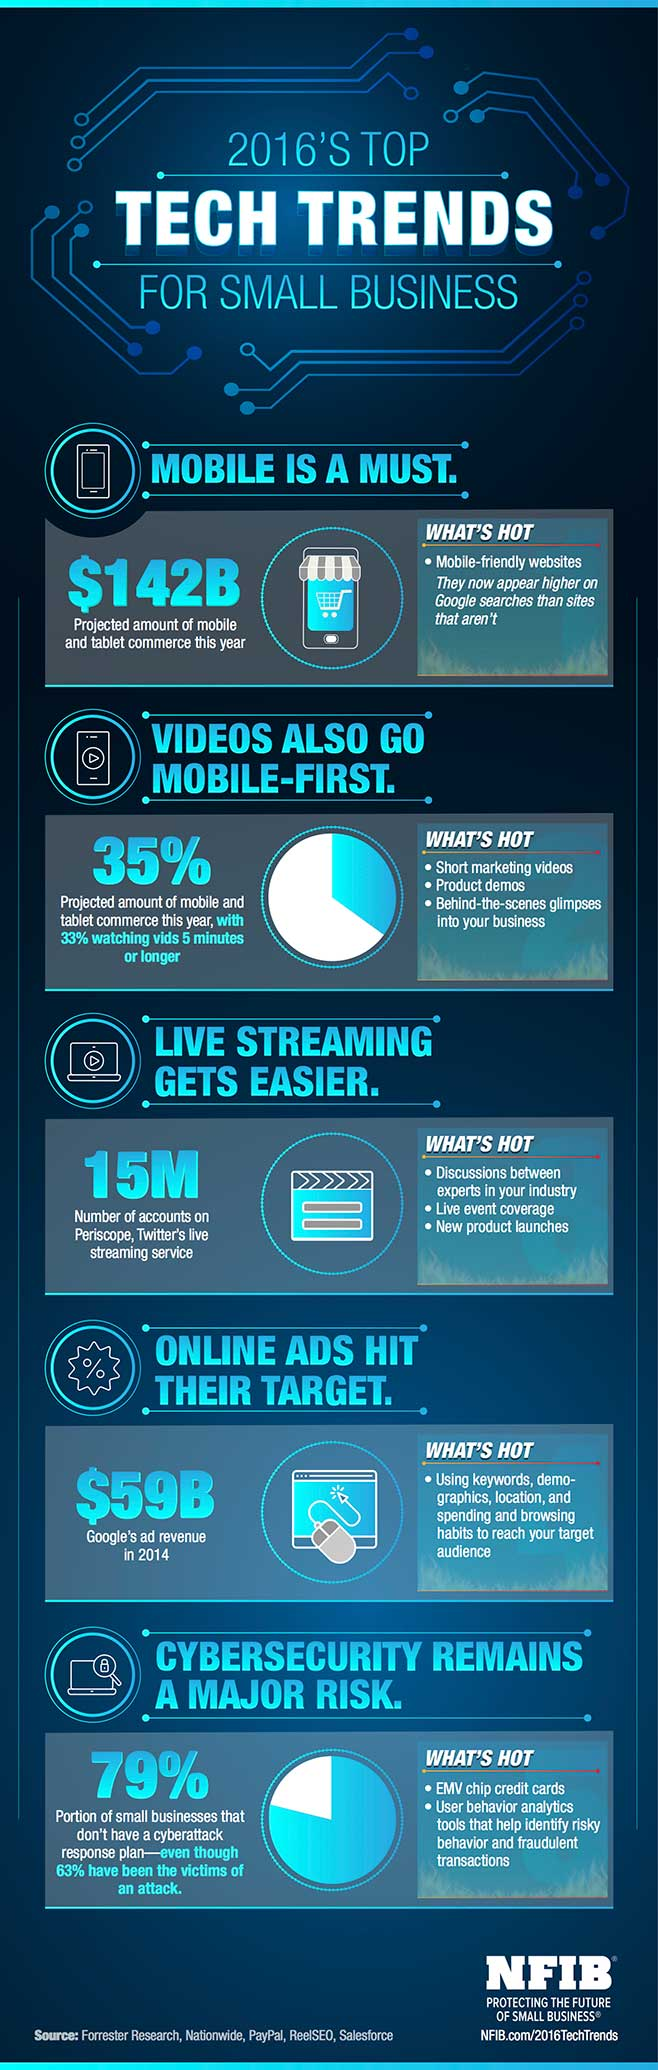 Top 5 Tech Trends infographic